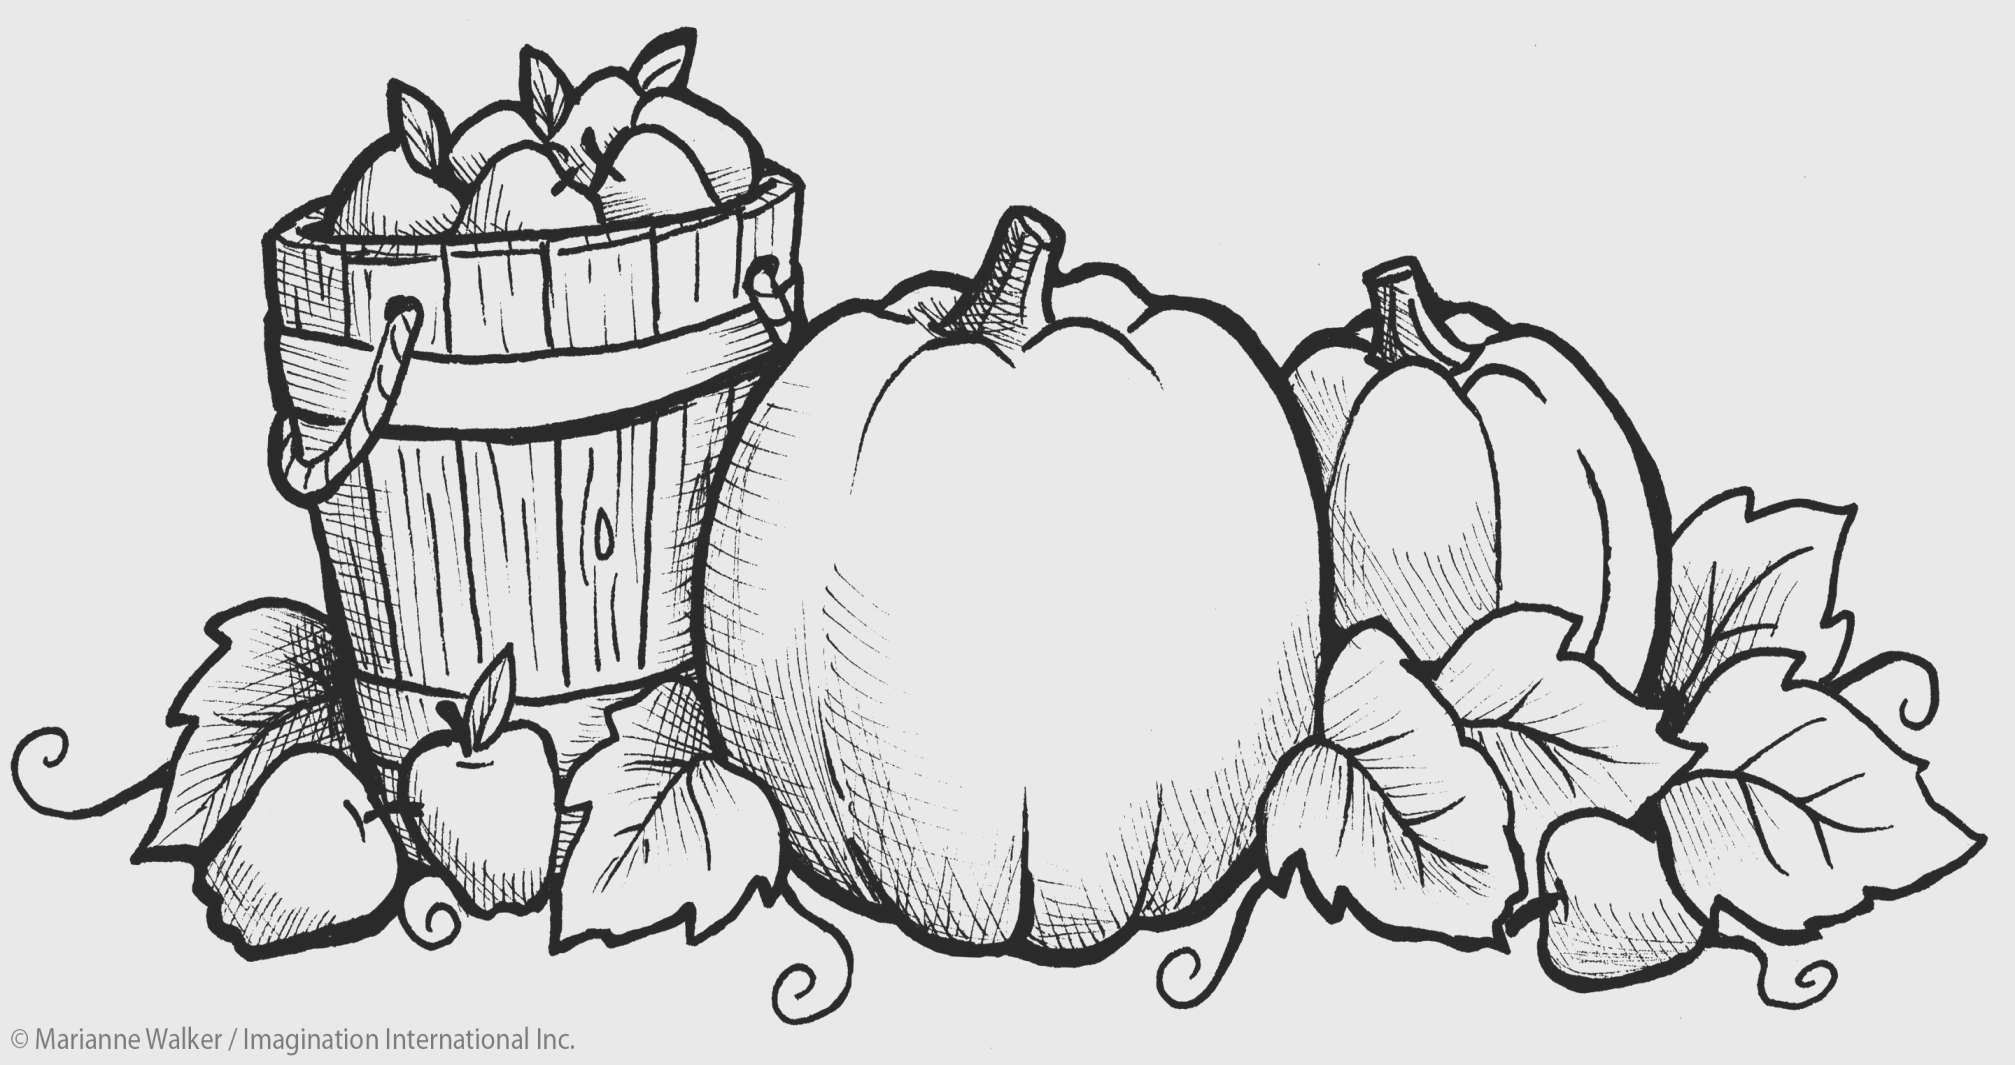 T For Tree Coloring Page Lovely Fall To Color Printable Toiyeuemz Fall Coloring Sheets Fall Coloring Pages Fall Leaves Coloring Pages